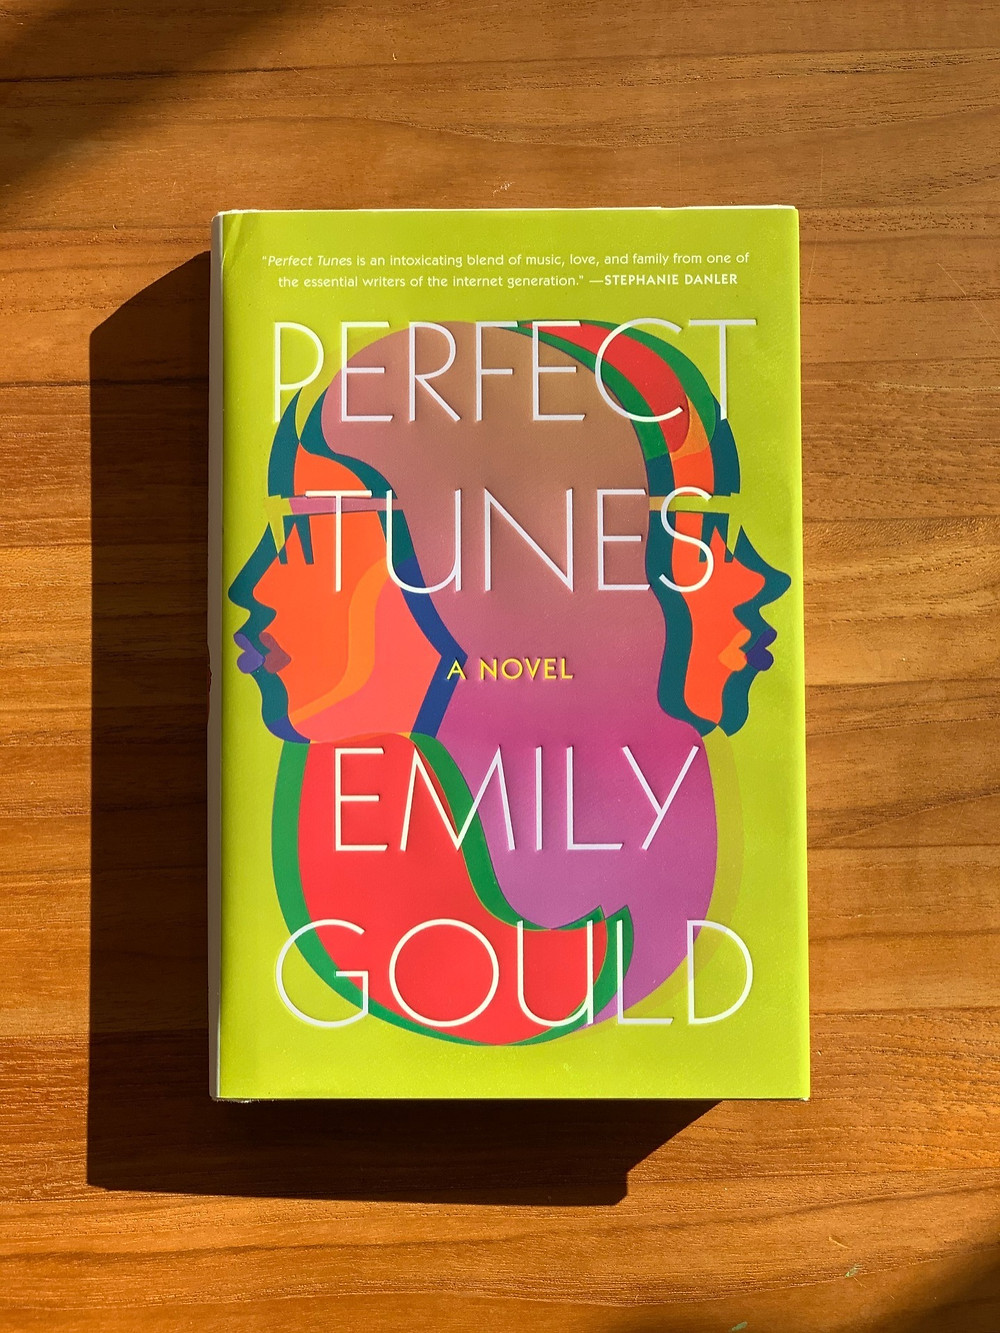 The book Perfect Tunes lays on a table in the sun